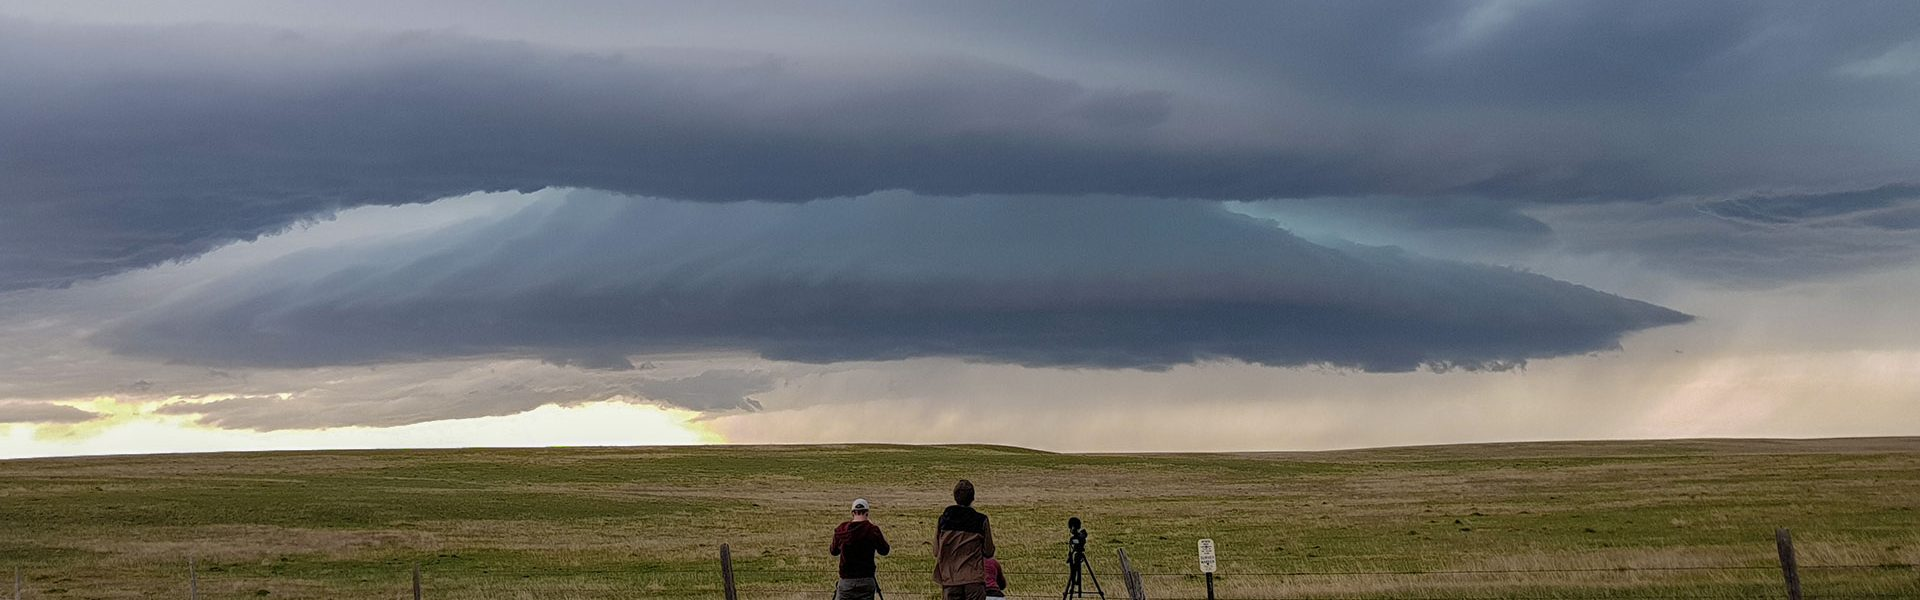 See Nature's Fury Team in Wyoming with Supercell